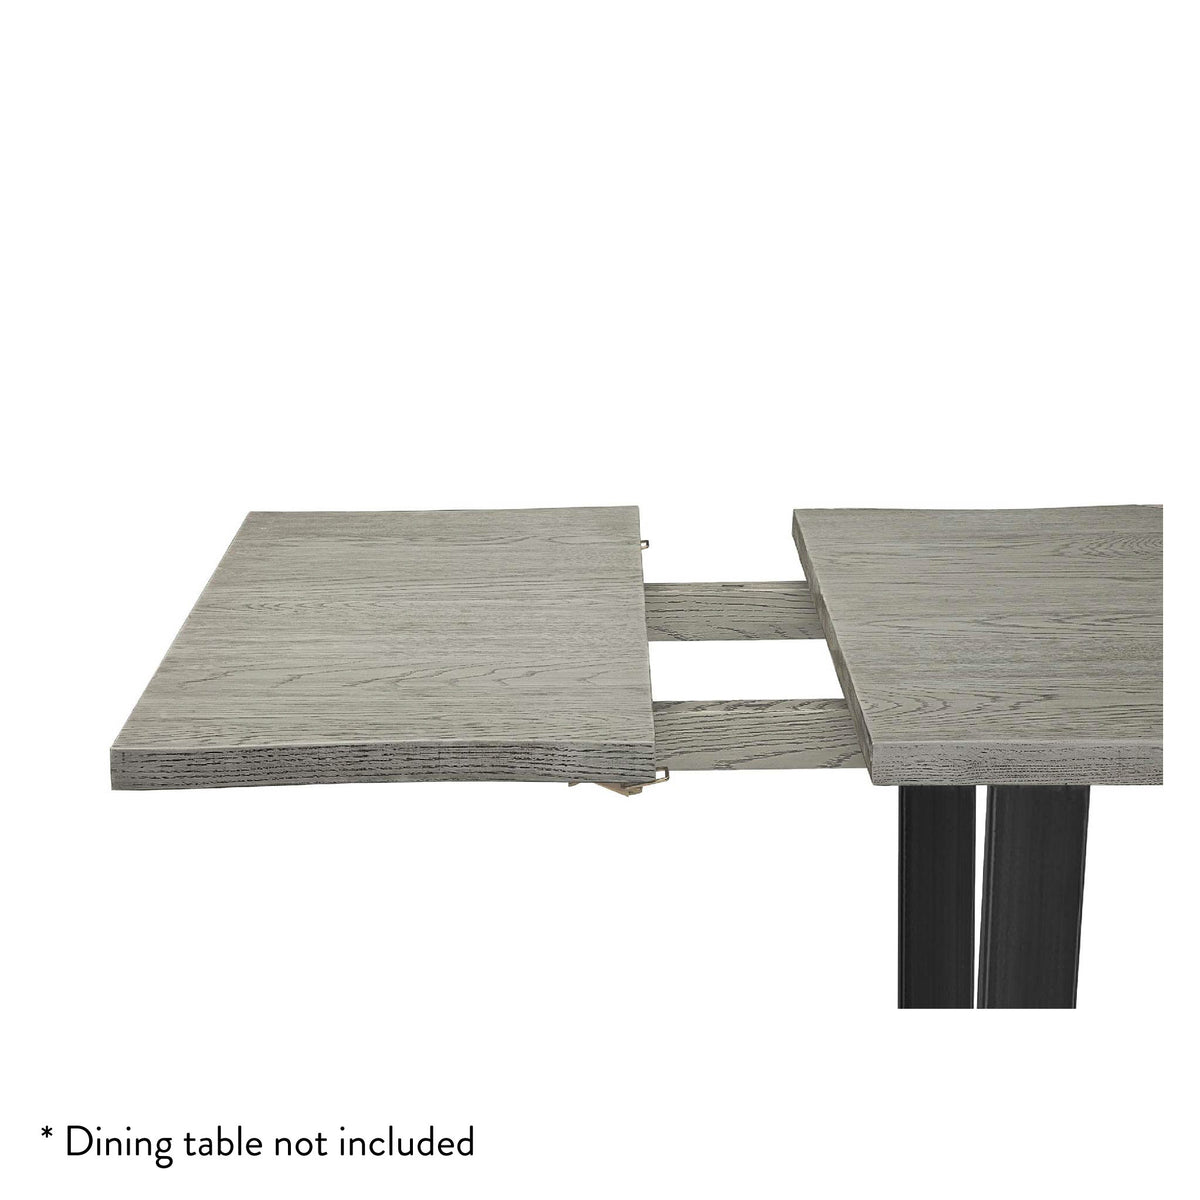 Soho Grey Dining Table Extension Leaf by Roseland Furniture